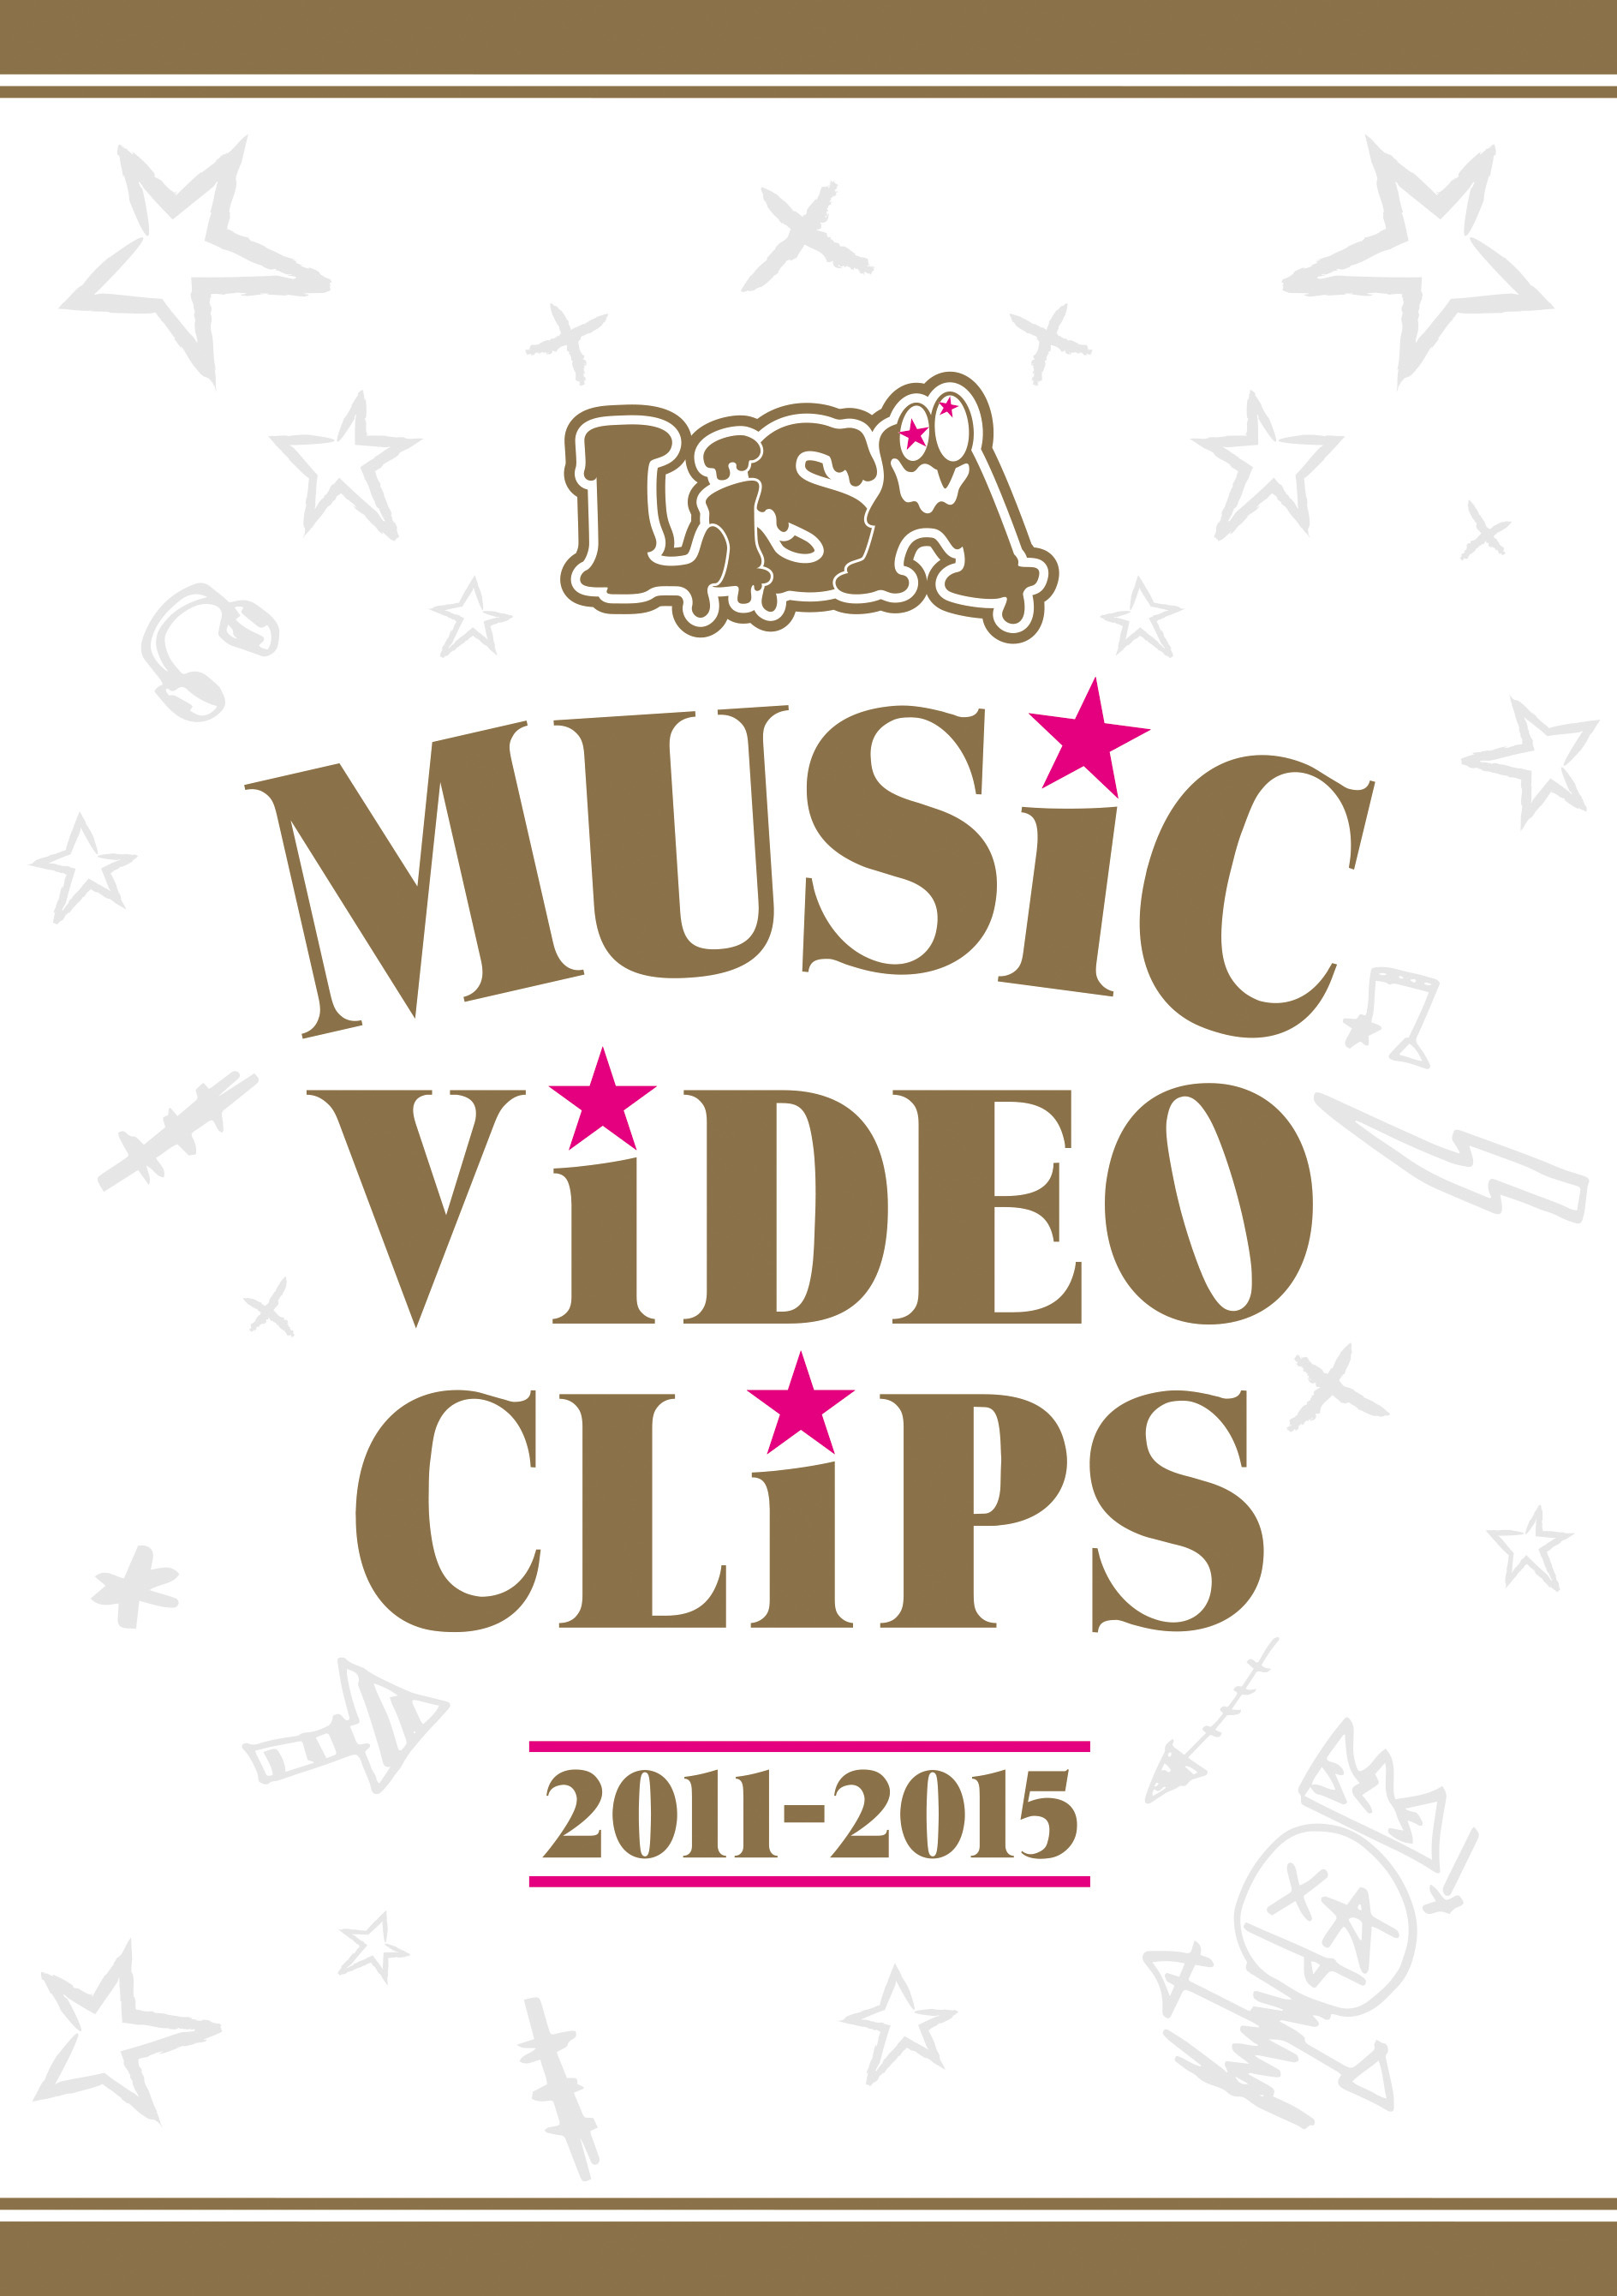 LiSA MUSiC ViDEO CLiPS 2011-2015